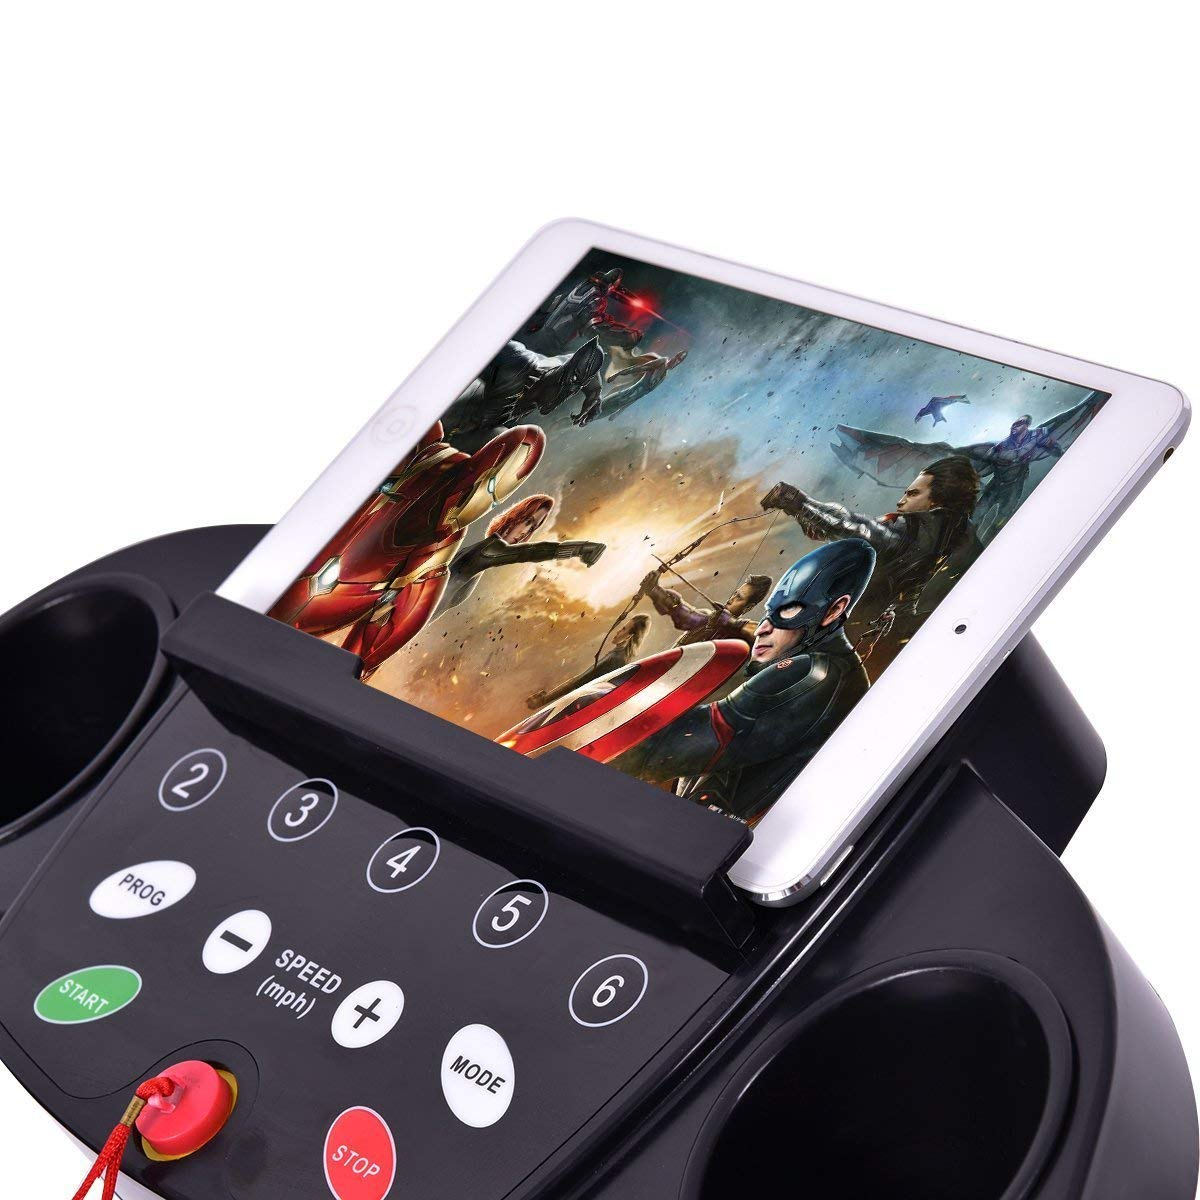 GYMAX Folding Exercise Treadmill Fitness Electric Treadmill Electric Motorized Power Fitness Running Machine 800W W/IPAD Mobile Phone Holder (Black) by GYMAX (Image #2)